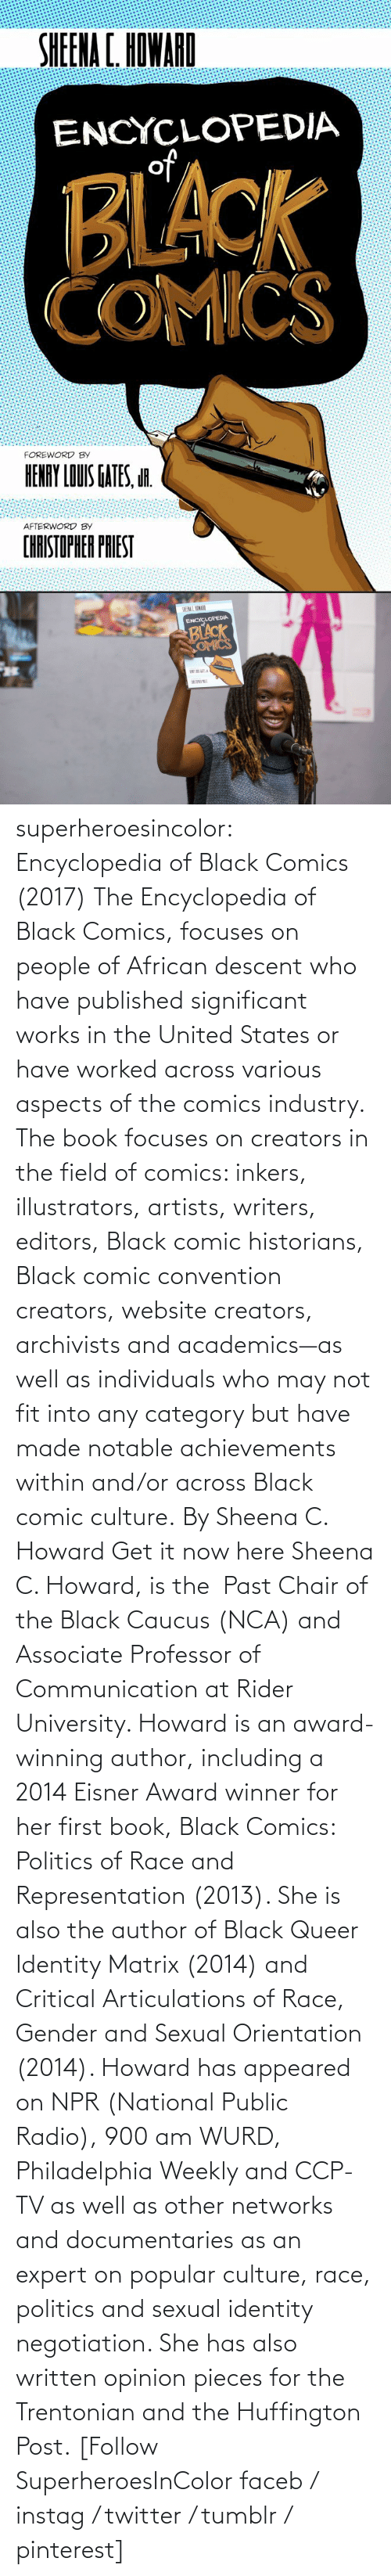 The Past: superheroesincolor: Encyclopedia of Black Comics (2017) The Encyclopedia of Black Comics, focuses on people of African descent who have published significant works in the United States or have worked across various aspects of the comics industry.  The book focuses on creators in the field of comics: inkers, illustrators, artists, writers, editors, Black comic historians, Black comic convention creators, website creators, archivists and academics—as well as individuals who may not fit into any category but have made notable achievements within and/or across Black comic culture. By Sheena C. Howard Get it now here  Sheena C. Howard, is the  Past Chair of the Black Caucus (NCA) and Associate Professor of Communication at Rider University. Howard is an award-winning author, including a 2014 Eisner Award winner for her first book, Black Comics: Politics of Race and Representation (2013). She is also the author of Black Queer Identity Matrix (2014) and Critical Articulations of Race, Gender and Sexual Orientation (2014). Howard has appeared on NPR (National Public Radio), 900 am WURD, Philadelphia Weekly and CCP-TV as well as other networks and documentaries as an expert on popular culture, race, politics and sexual identity negotiation. She has also written opinion pieces for the Trentonian and the Huffington Post.   [Follow SuperheroesInColor faceb / instag / twitter / tumblr / pinterest]